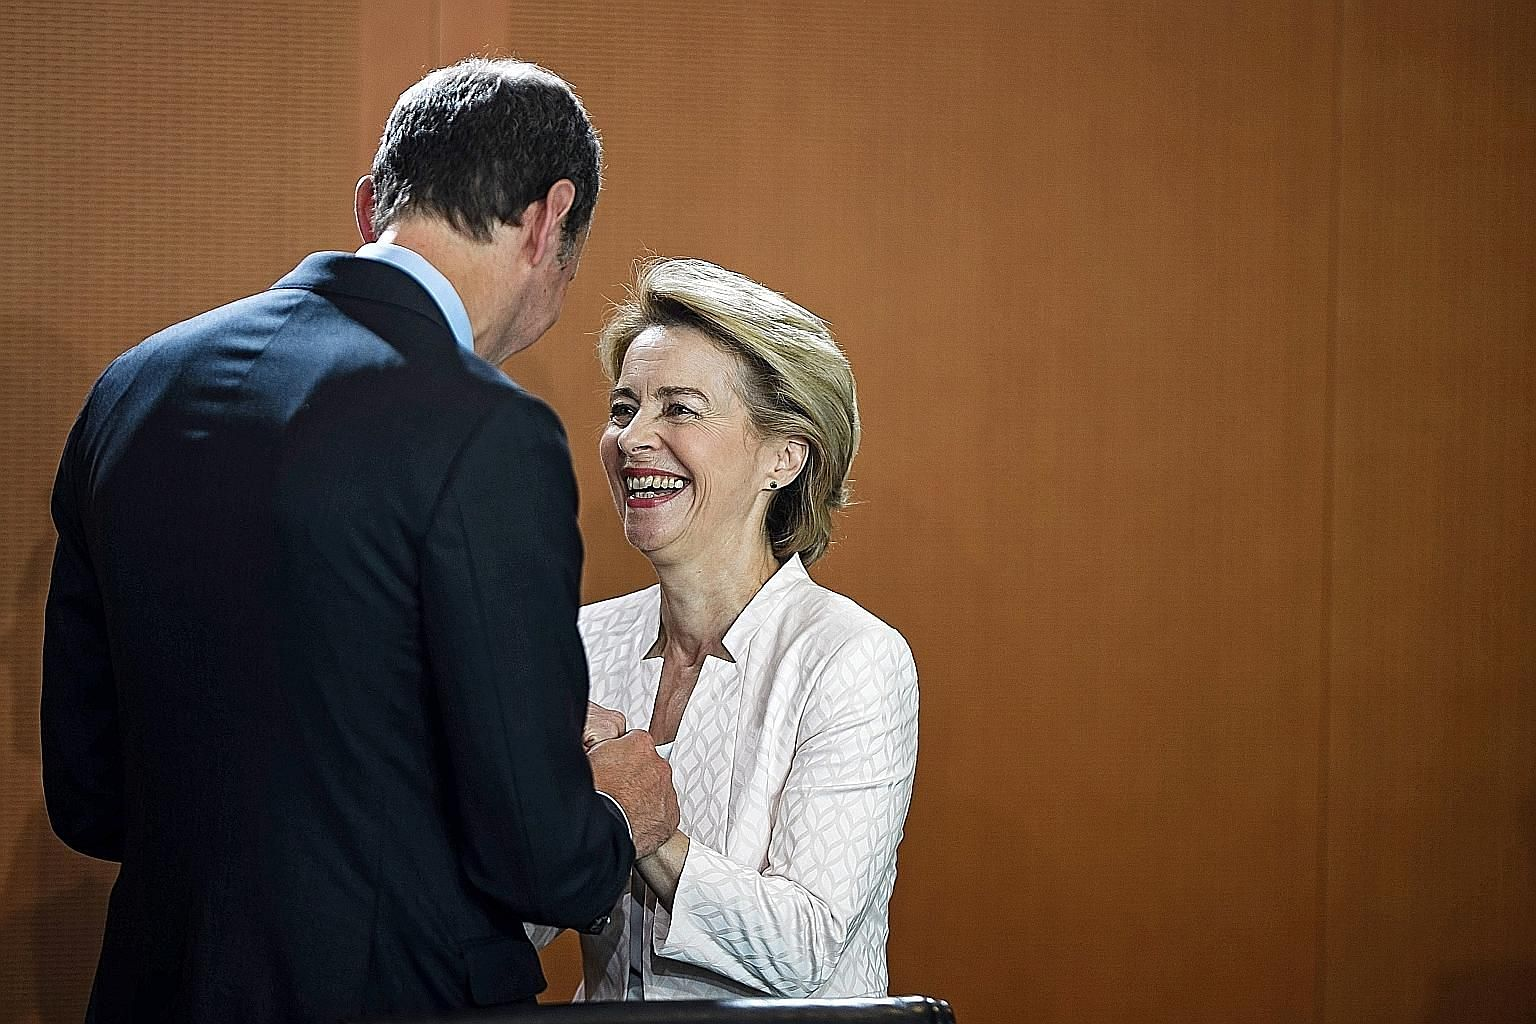 German Defence Minister Ursula von der Leyen and Minister of State for Bureaucracy Reduction and Federal-State Relations Hendrik Hoppenstedt before a Cabinet meeting at the Chancellery in Berlin yesterday. Dr von der Leyen had been named a candidate